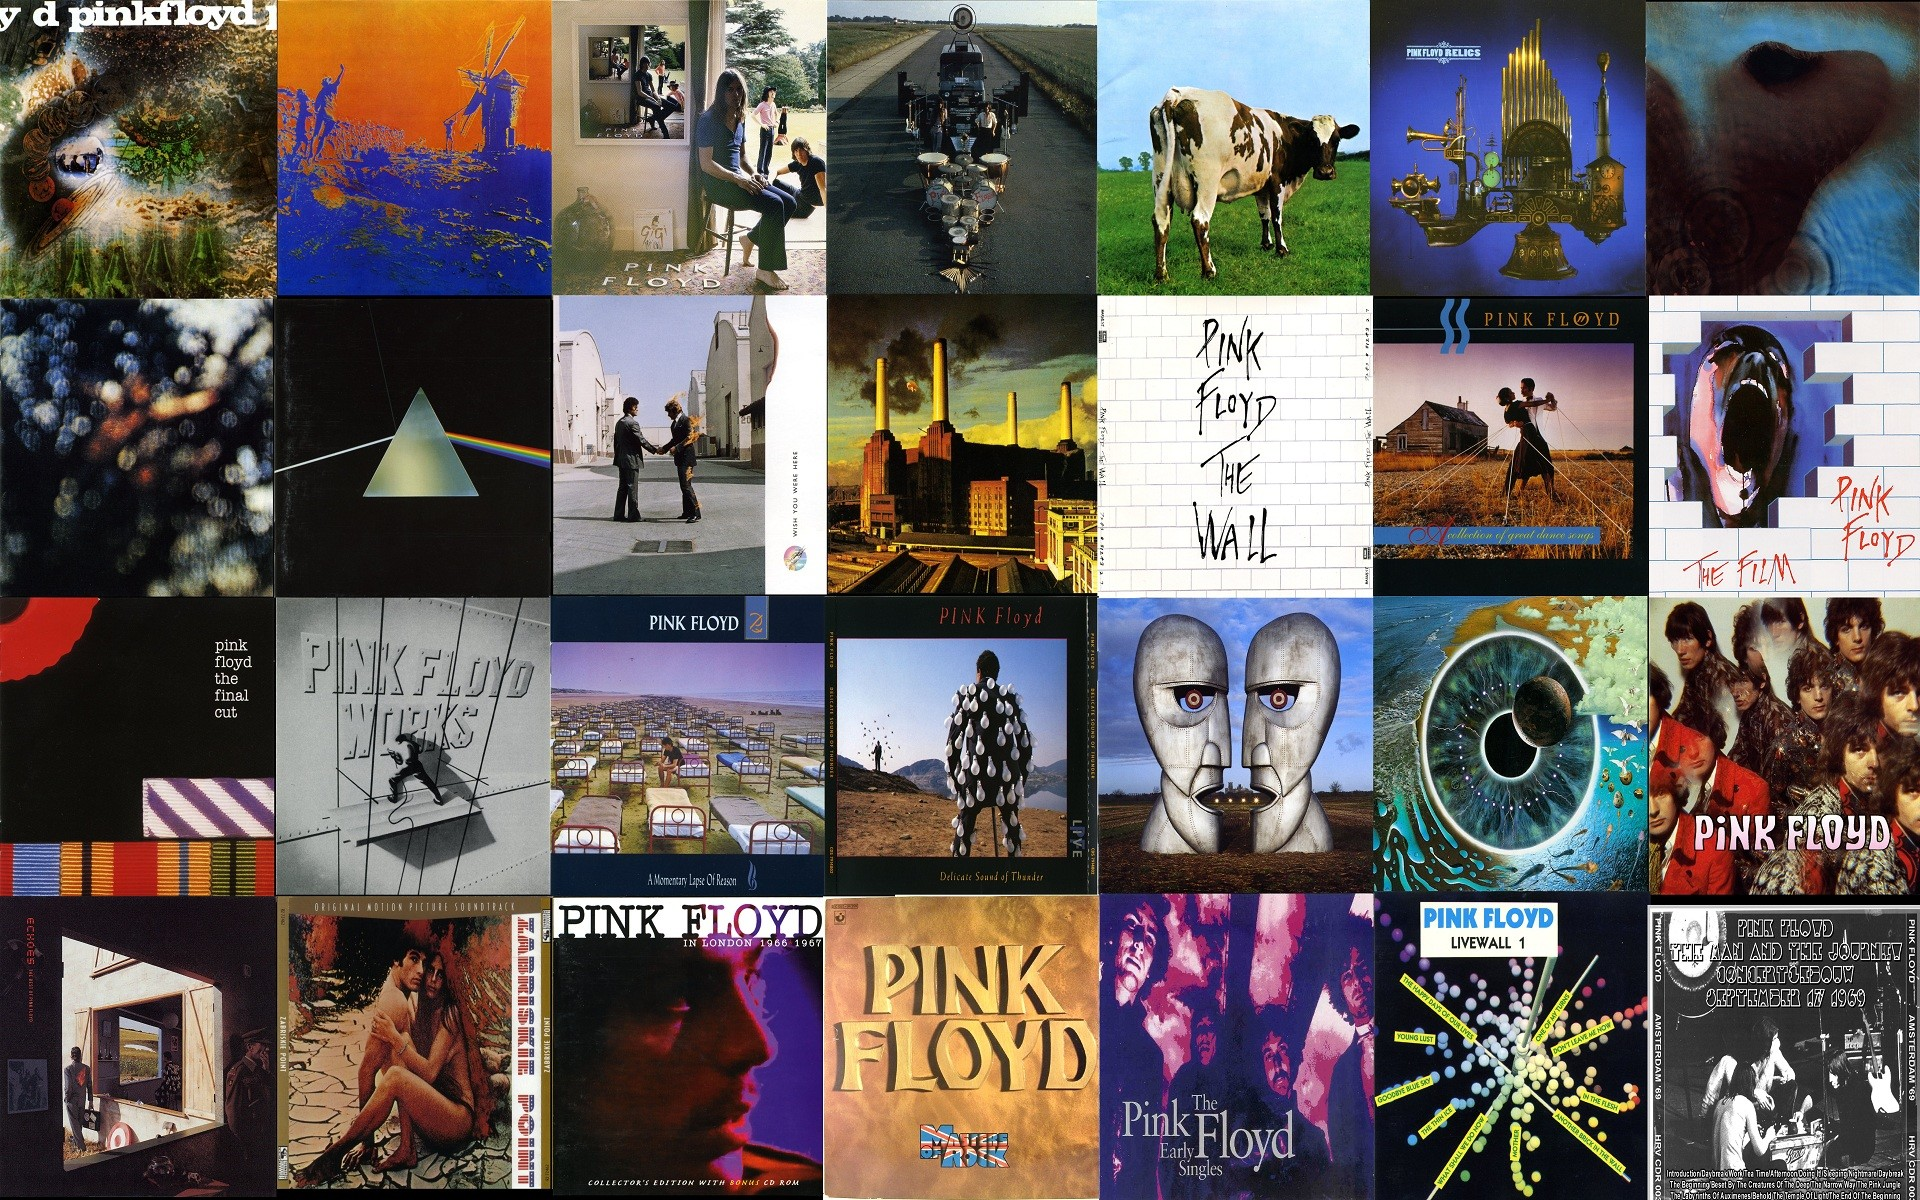 Pink Floyd Album Covers Wallpaper (68+ images)